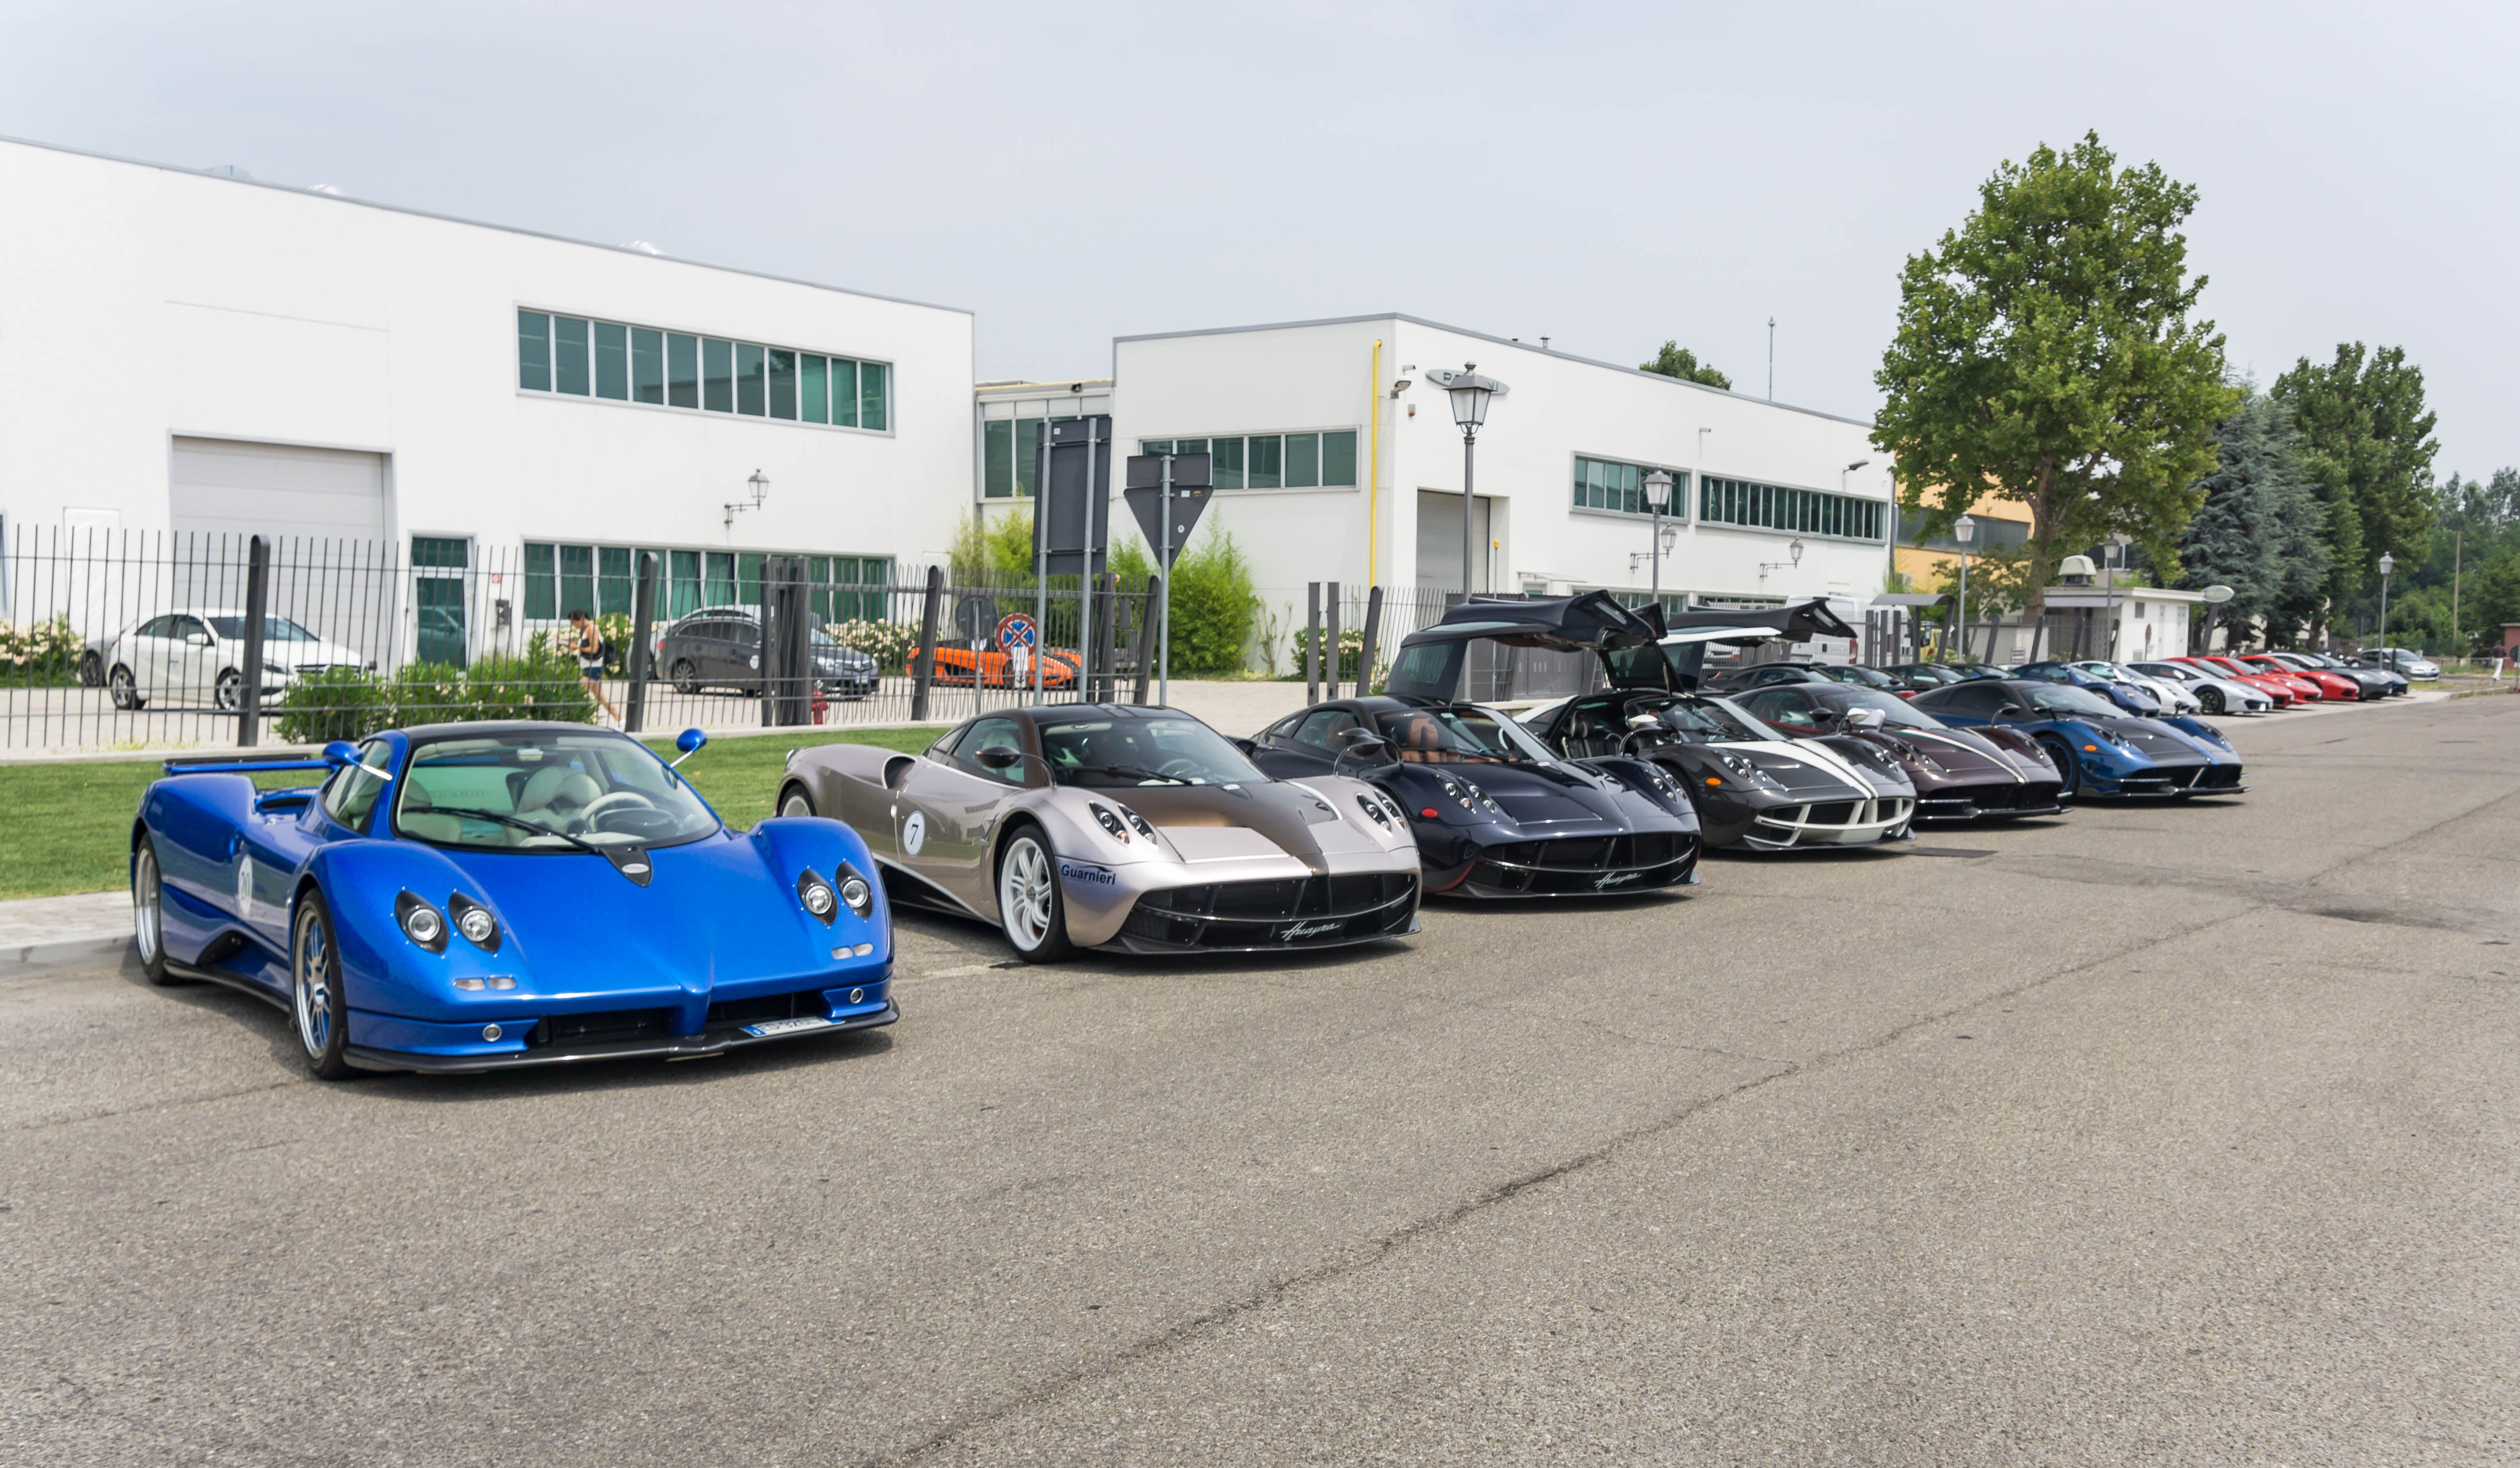 A Pagani Rally In Italy Puts All Other Car Meets To Shame | Gizmodo ...